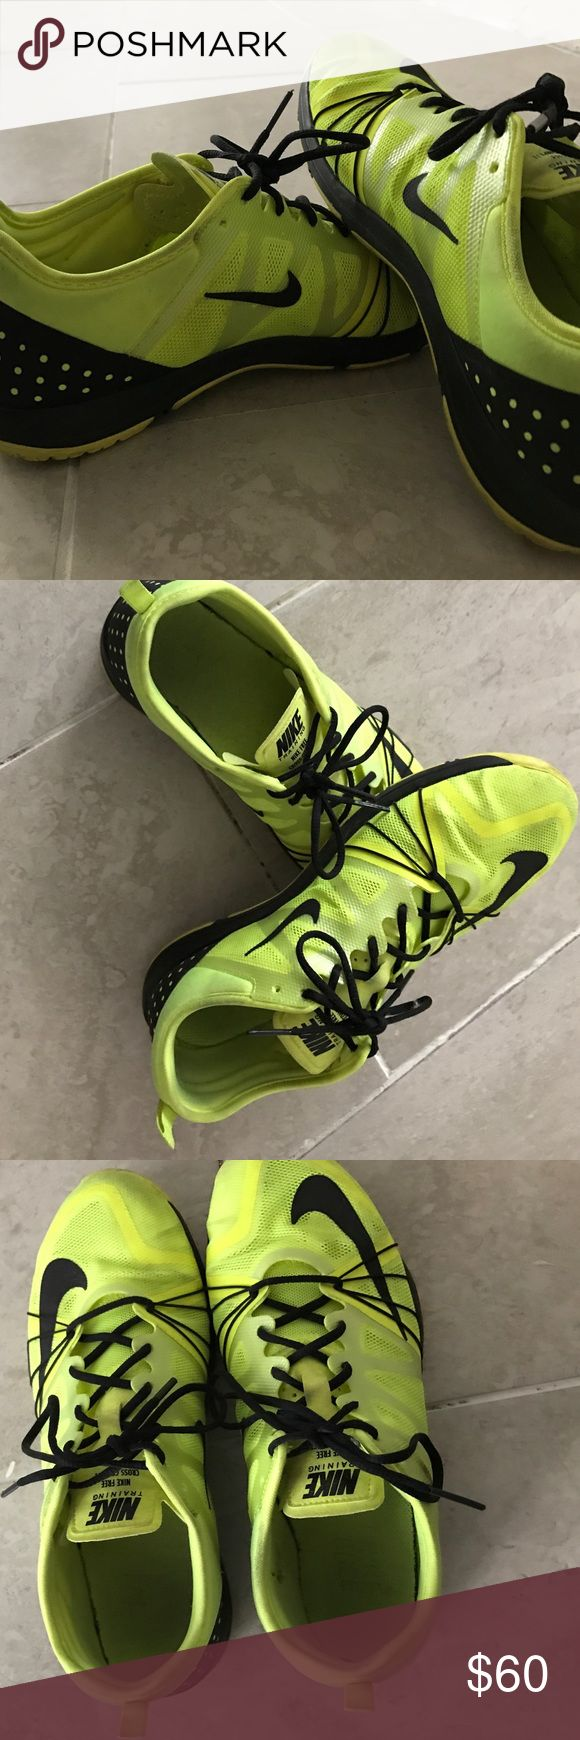 Nike free cross training shoes Bright yellow Nike free cross training shoes, amazing for lifting, for HIIT workouts for anything really, normal wear and tear, doesn't come in nike box. make an offer through offer button, :) thank you. Nike Shoes Sneakers